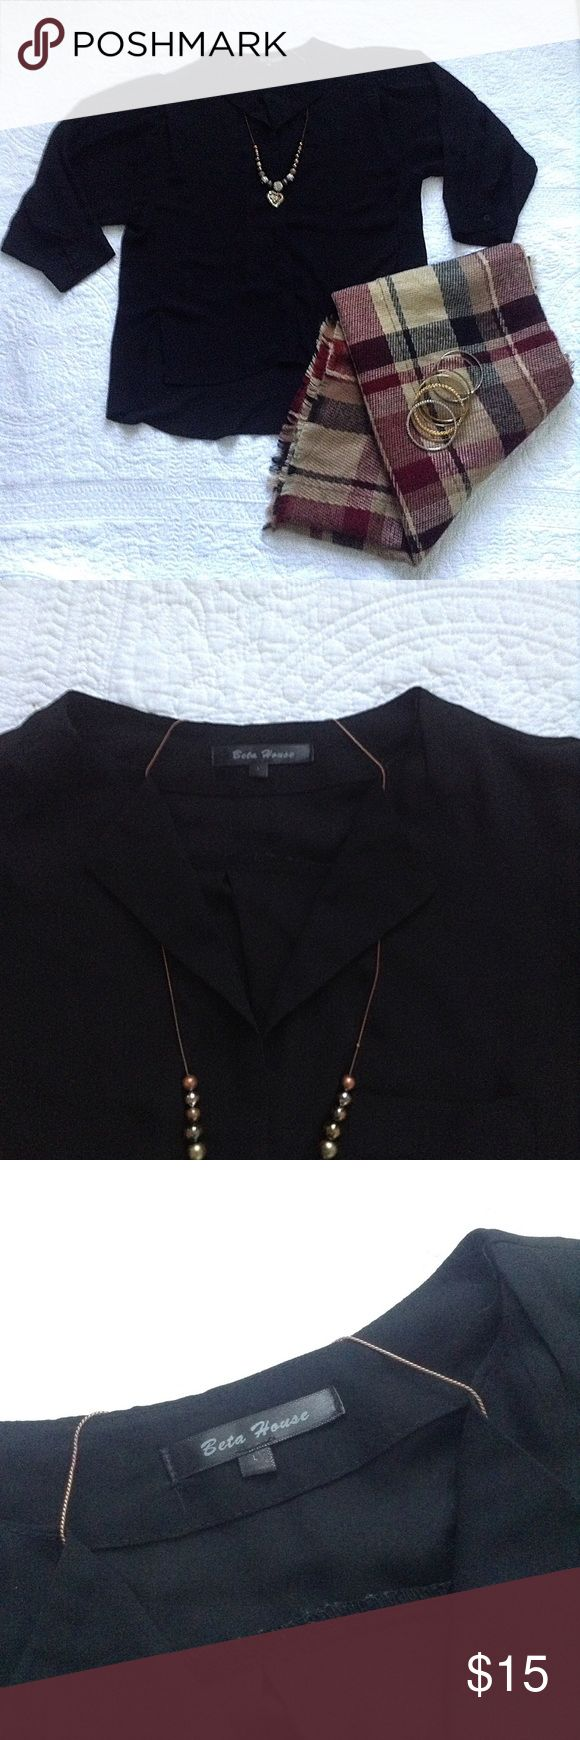 🎉Beta House🎉 High-Low Black Tunic Beautiful black tunic with a high low style. Transparent material. Beta House Tops Tunics